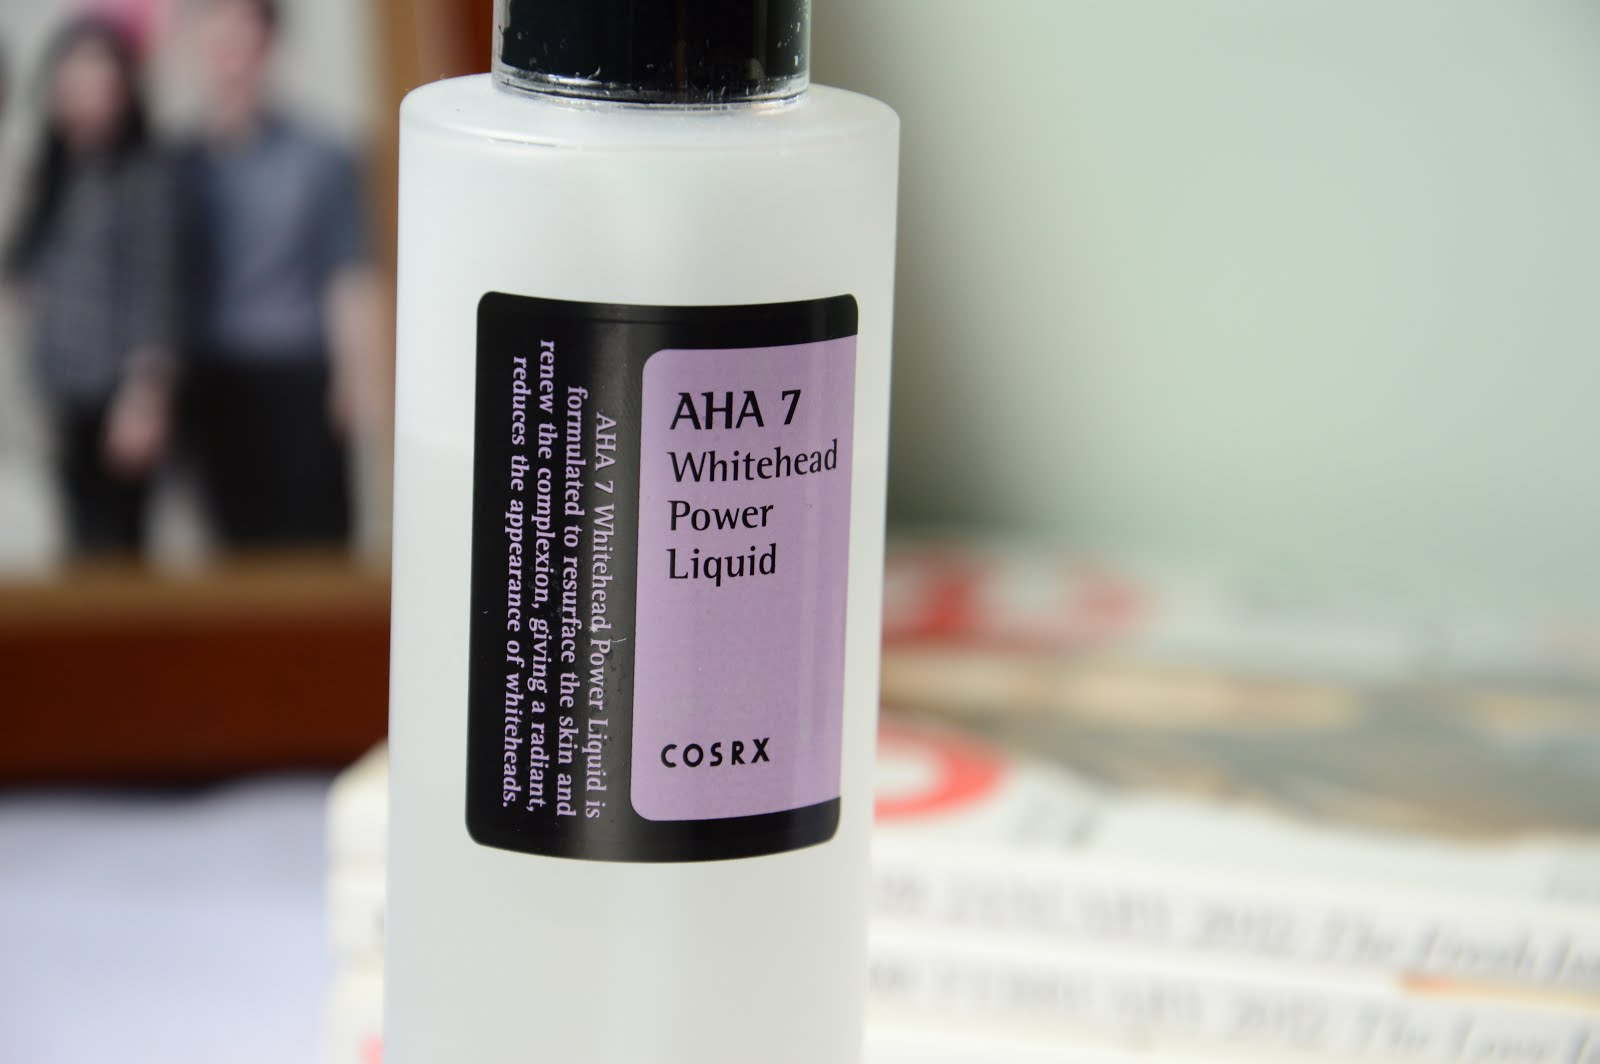 COSRX AHA 7 Whitehead Power Liquid review